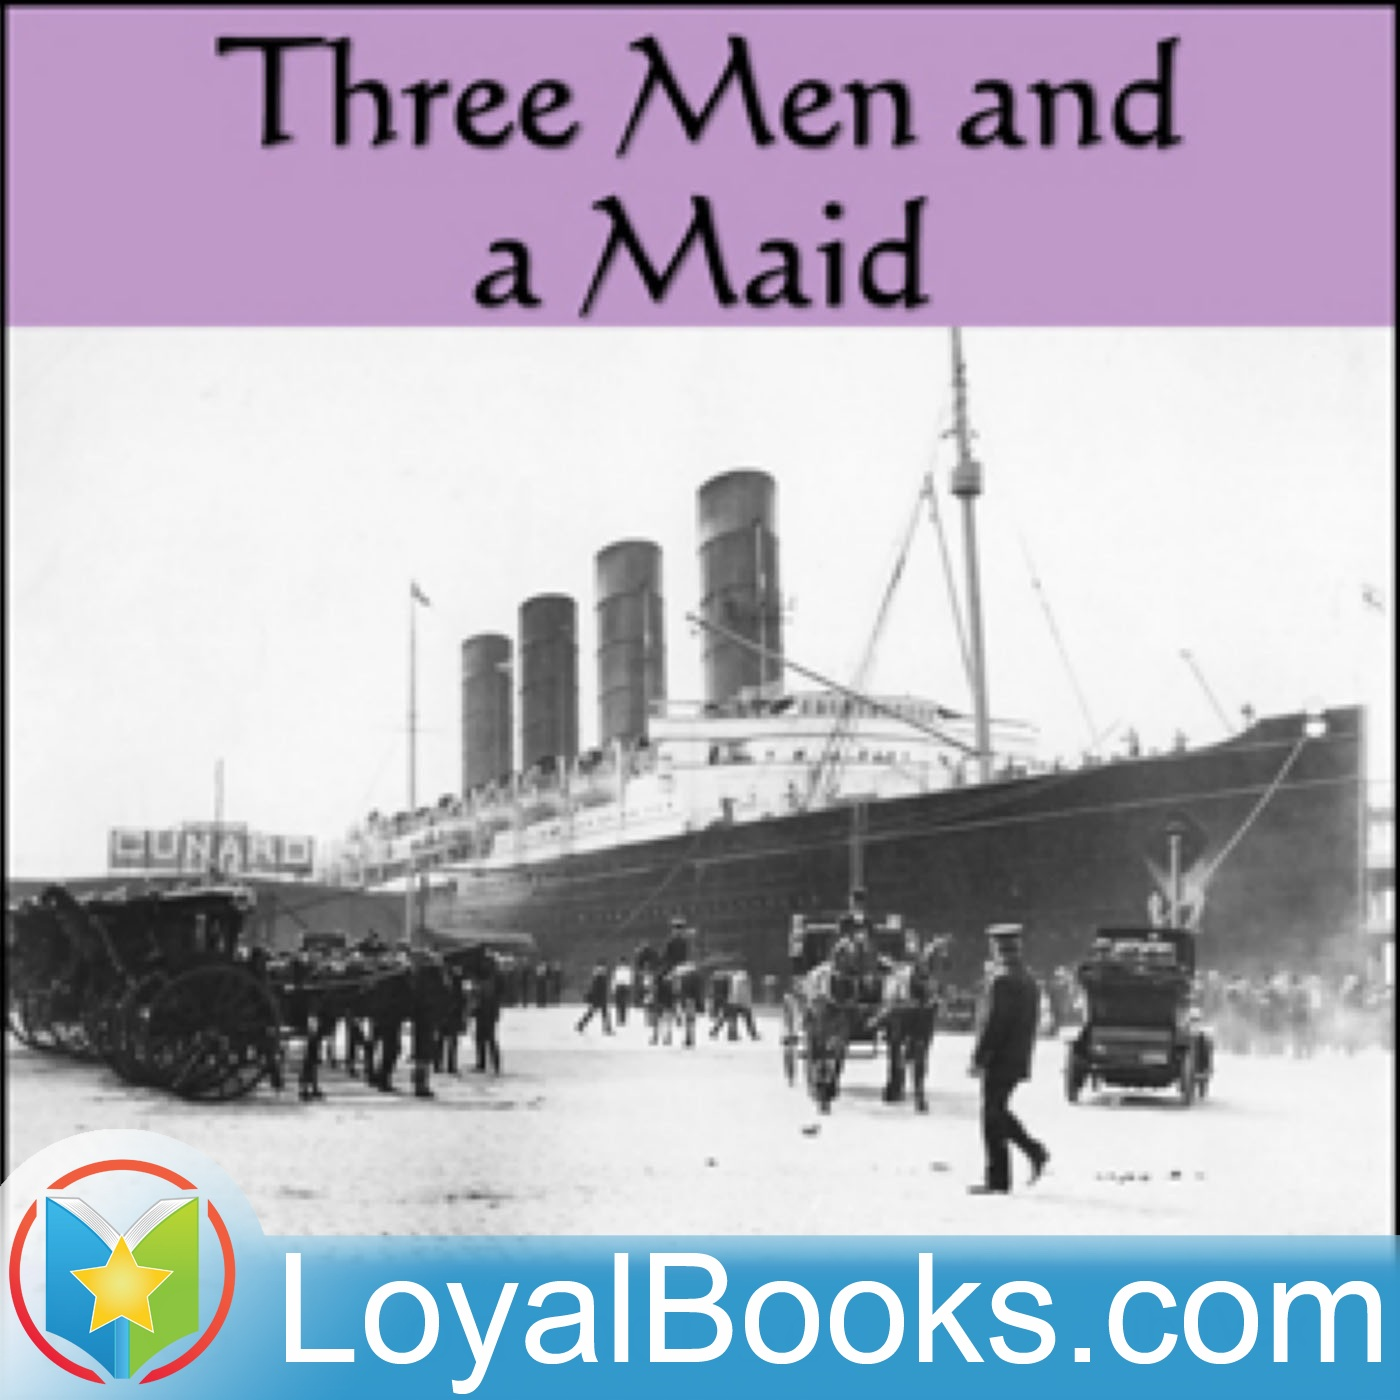 <![CDATA[Three Men and a Maid by P. G. Wodehouse]]>